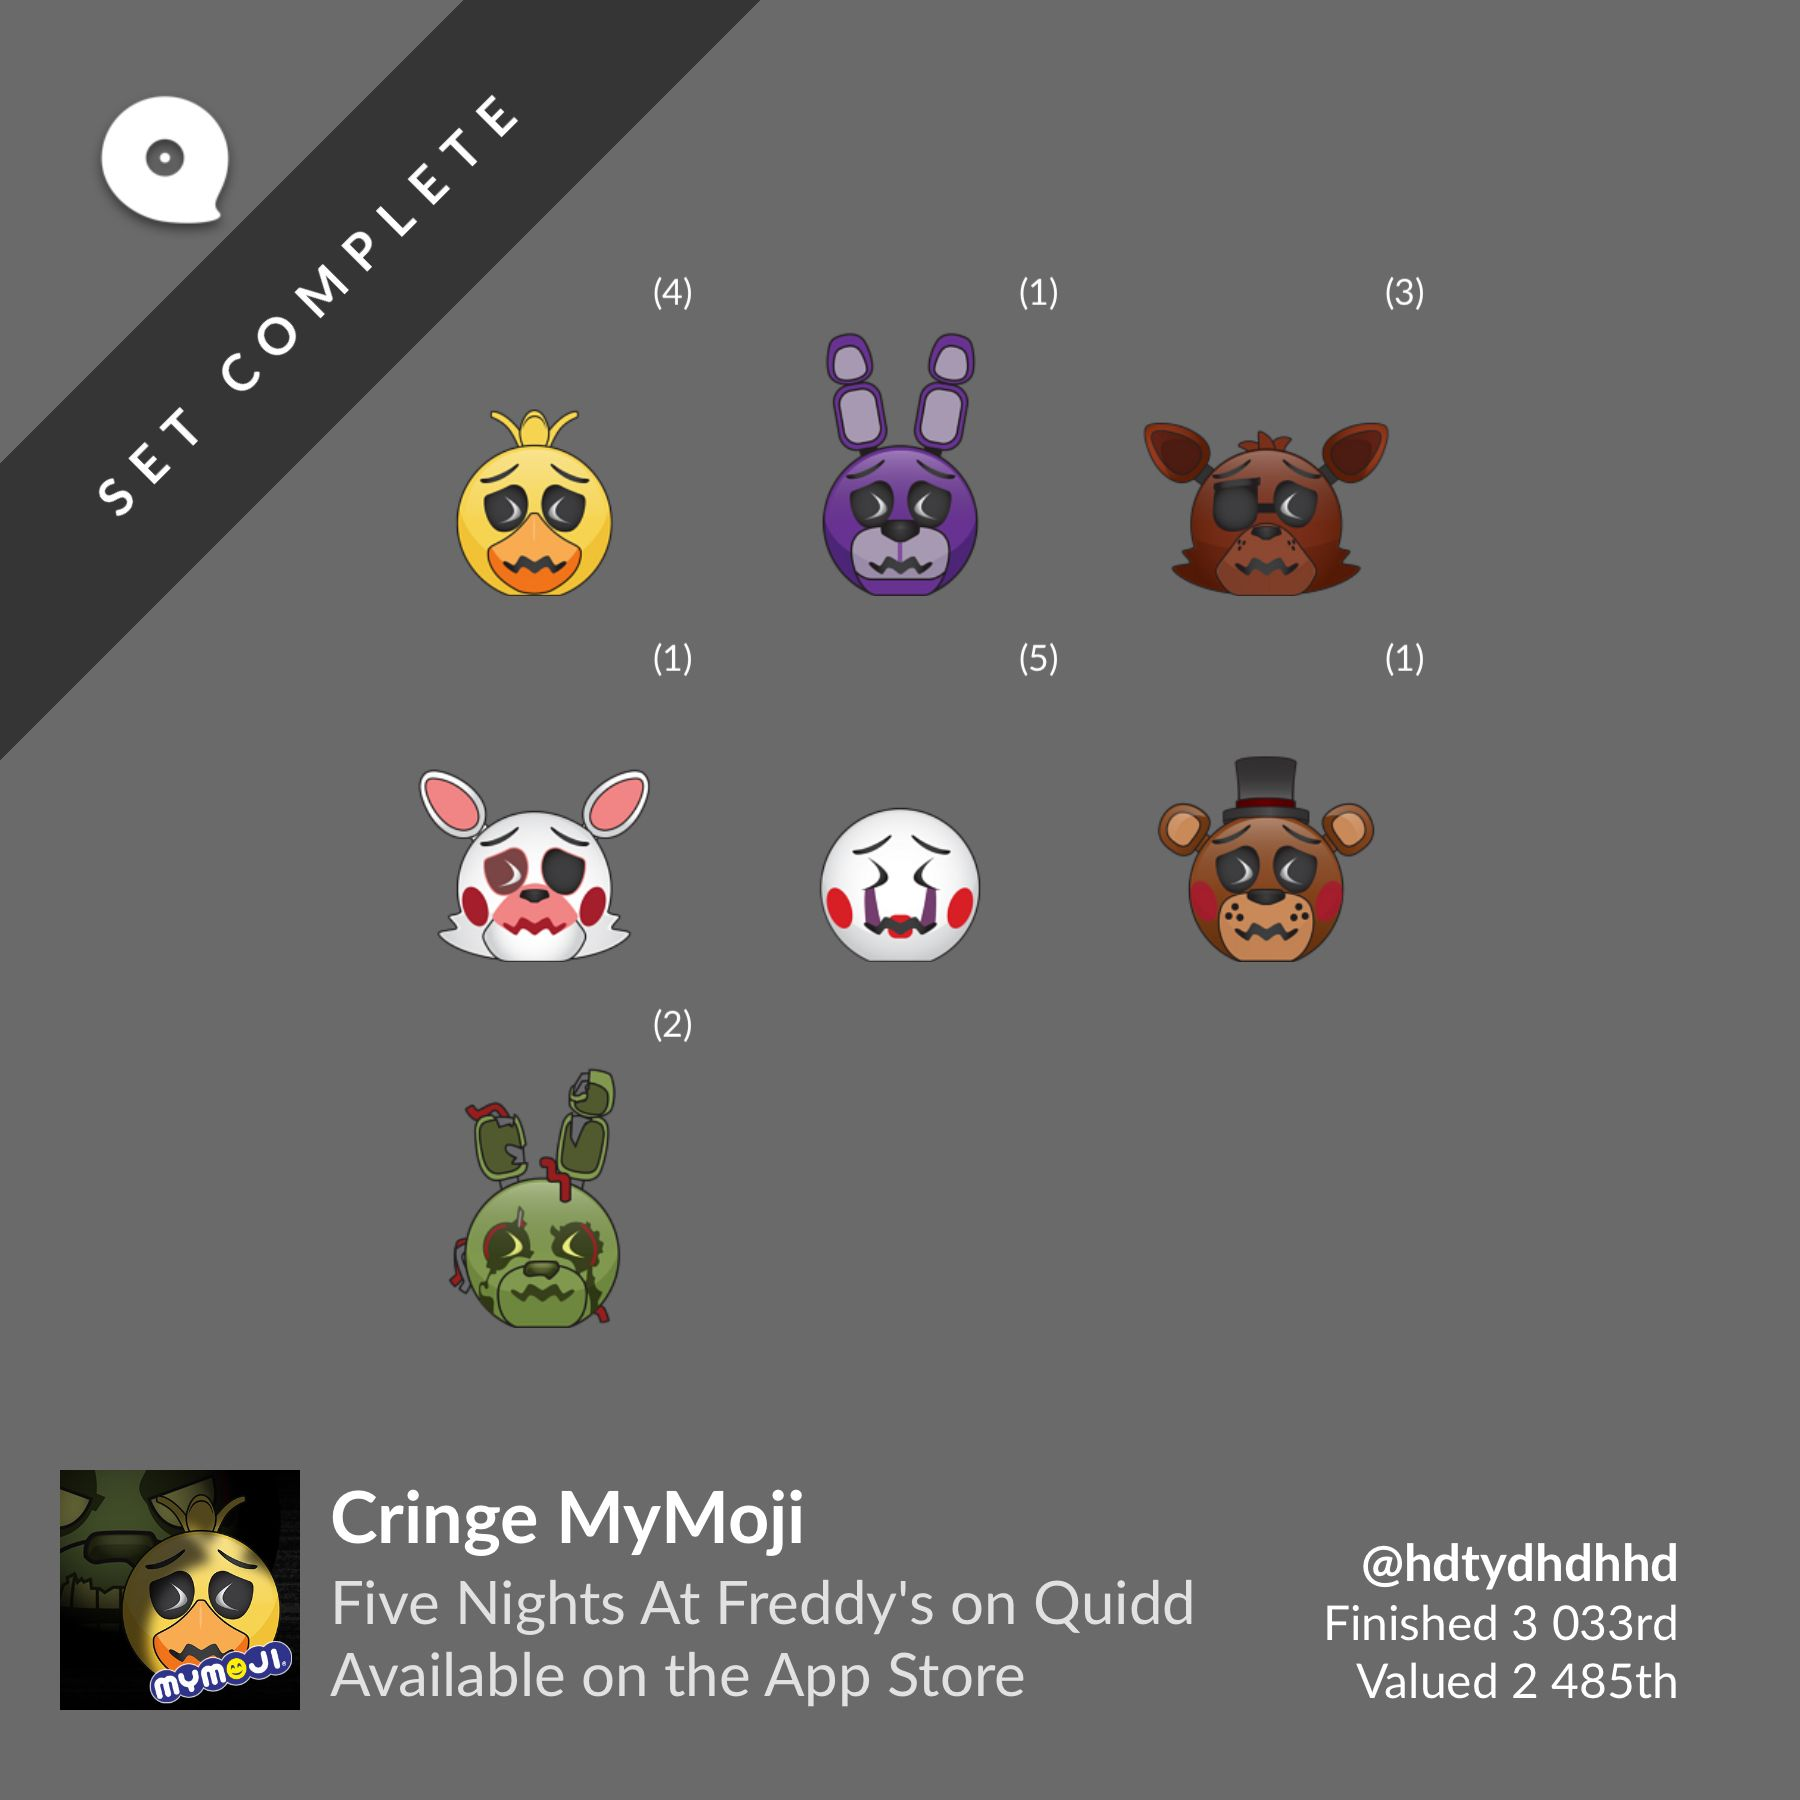 Cringe Mymoji From Five Nights At Freddys On Quidd Http